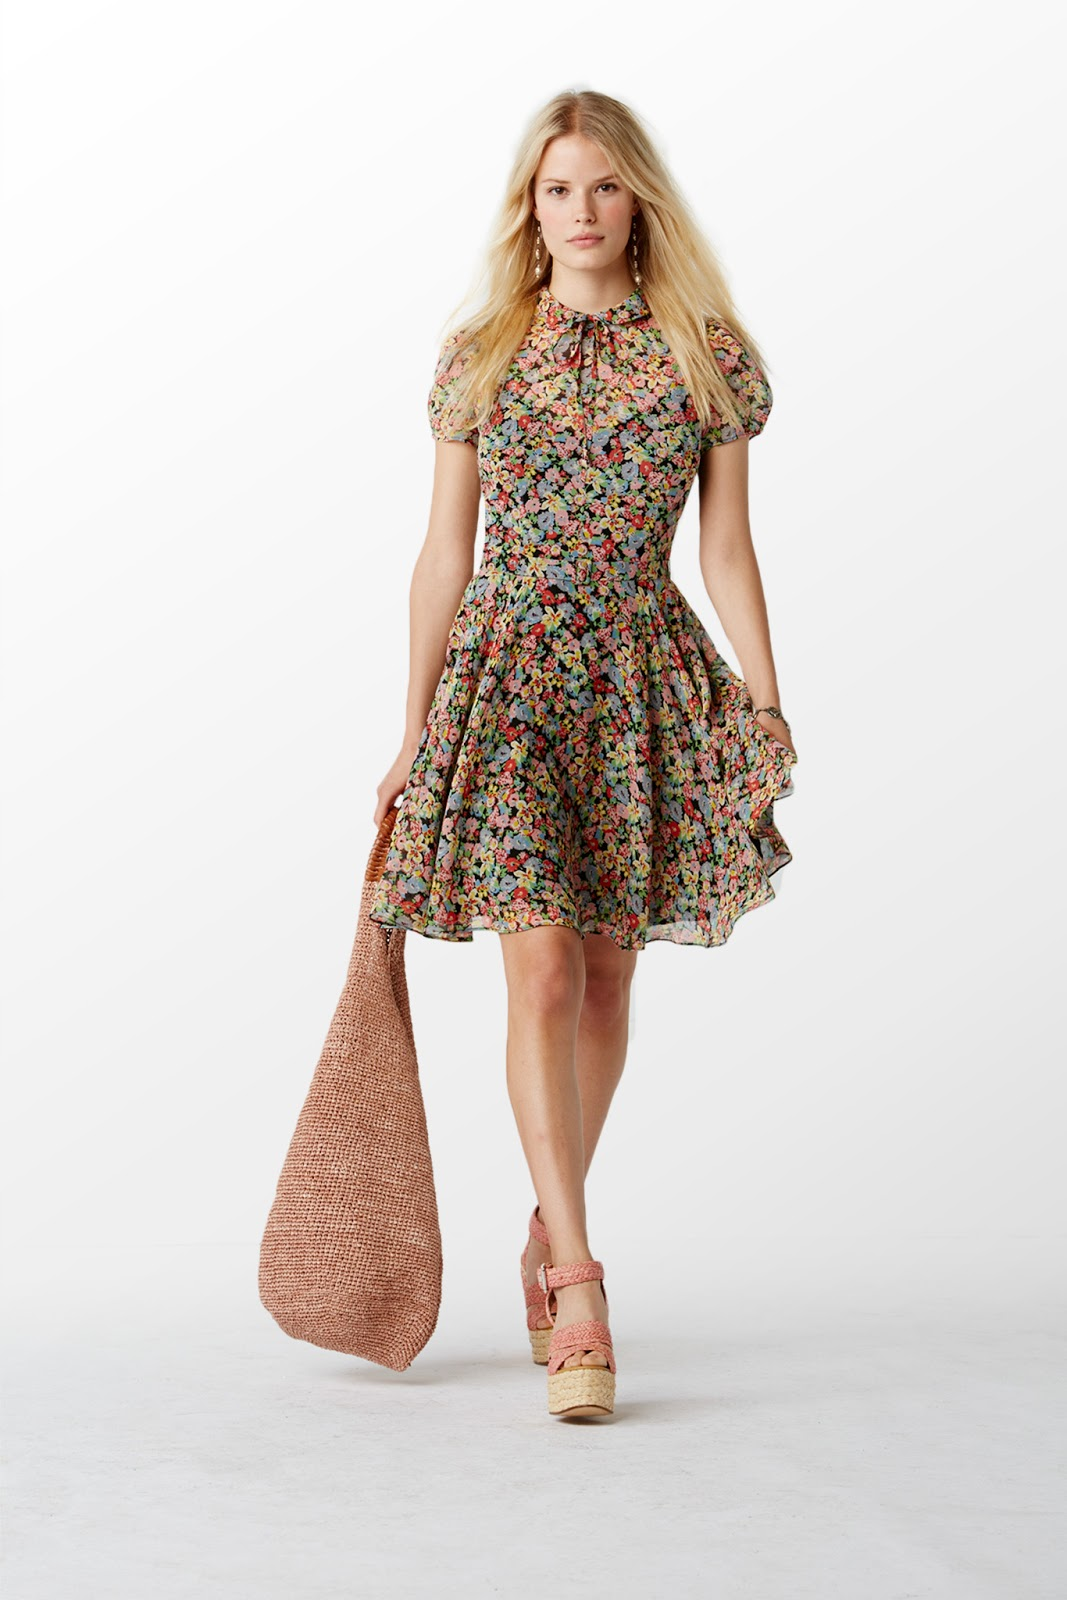 Polo Ralph Lauren summer dresses for women 2015 is now leading the front. Polo Ralph Lauren is an American fashion house working in the field of fashion ...